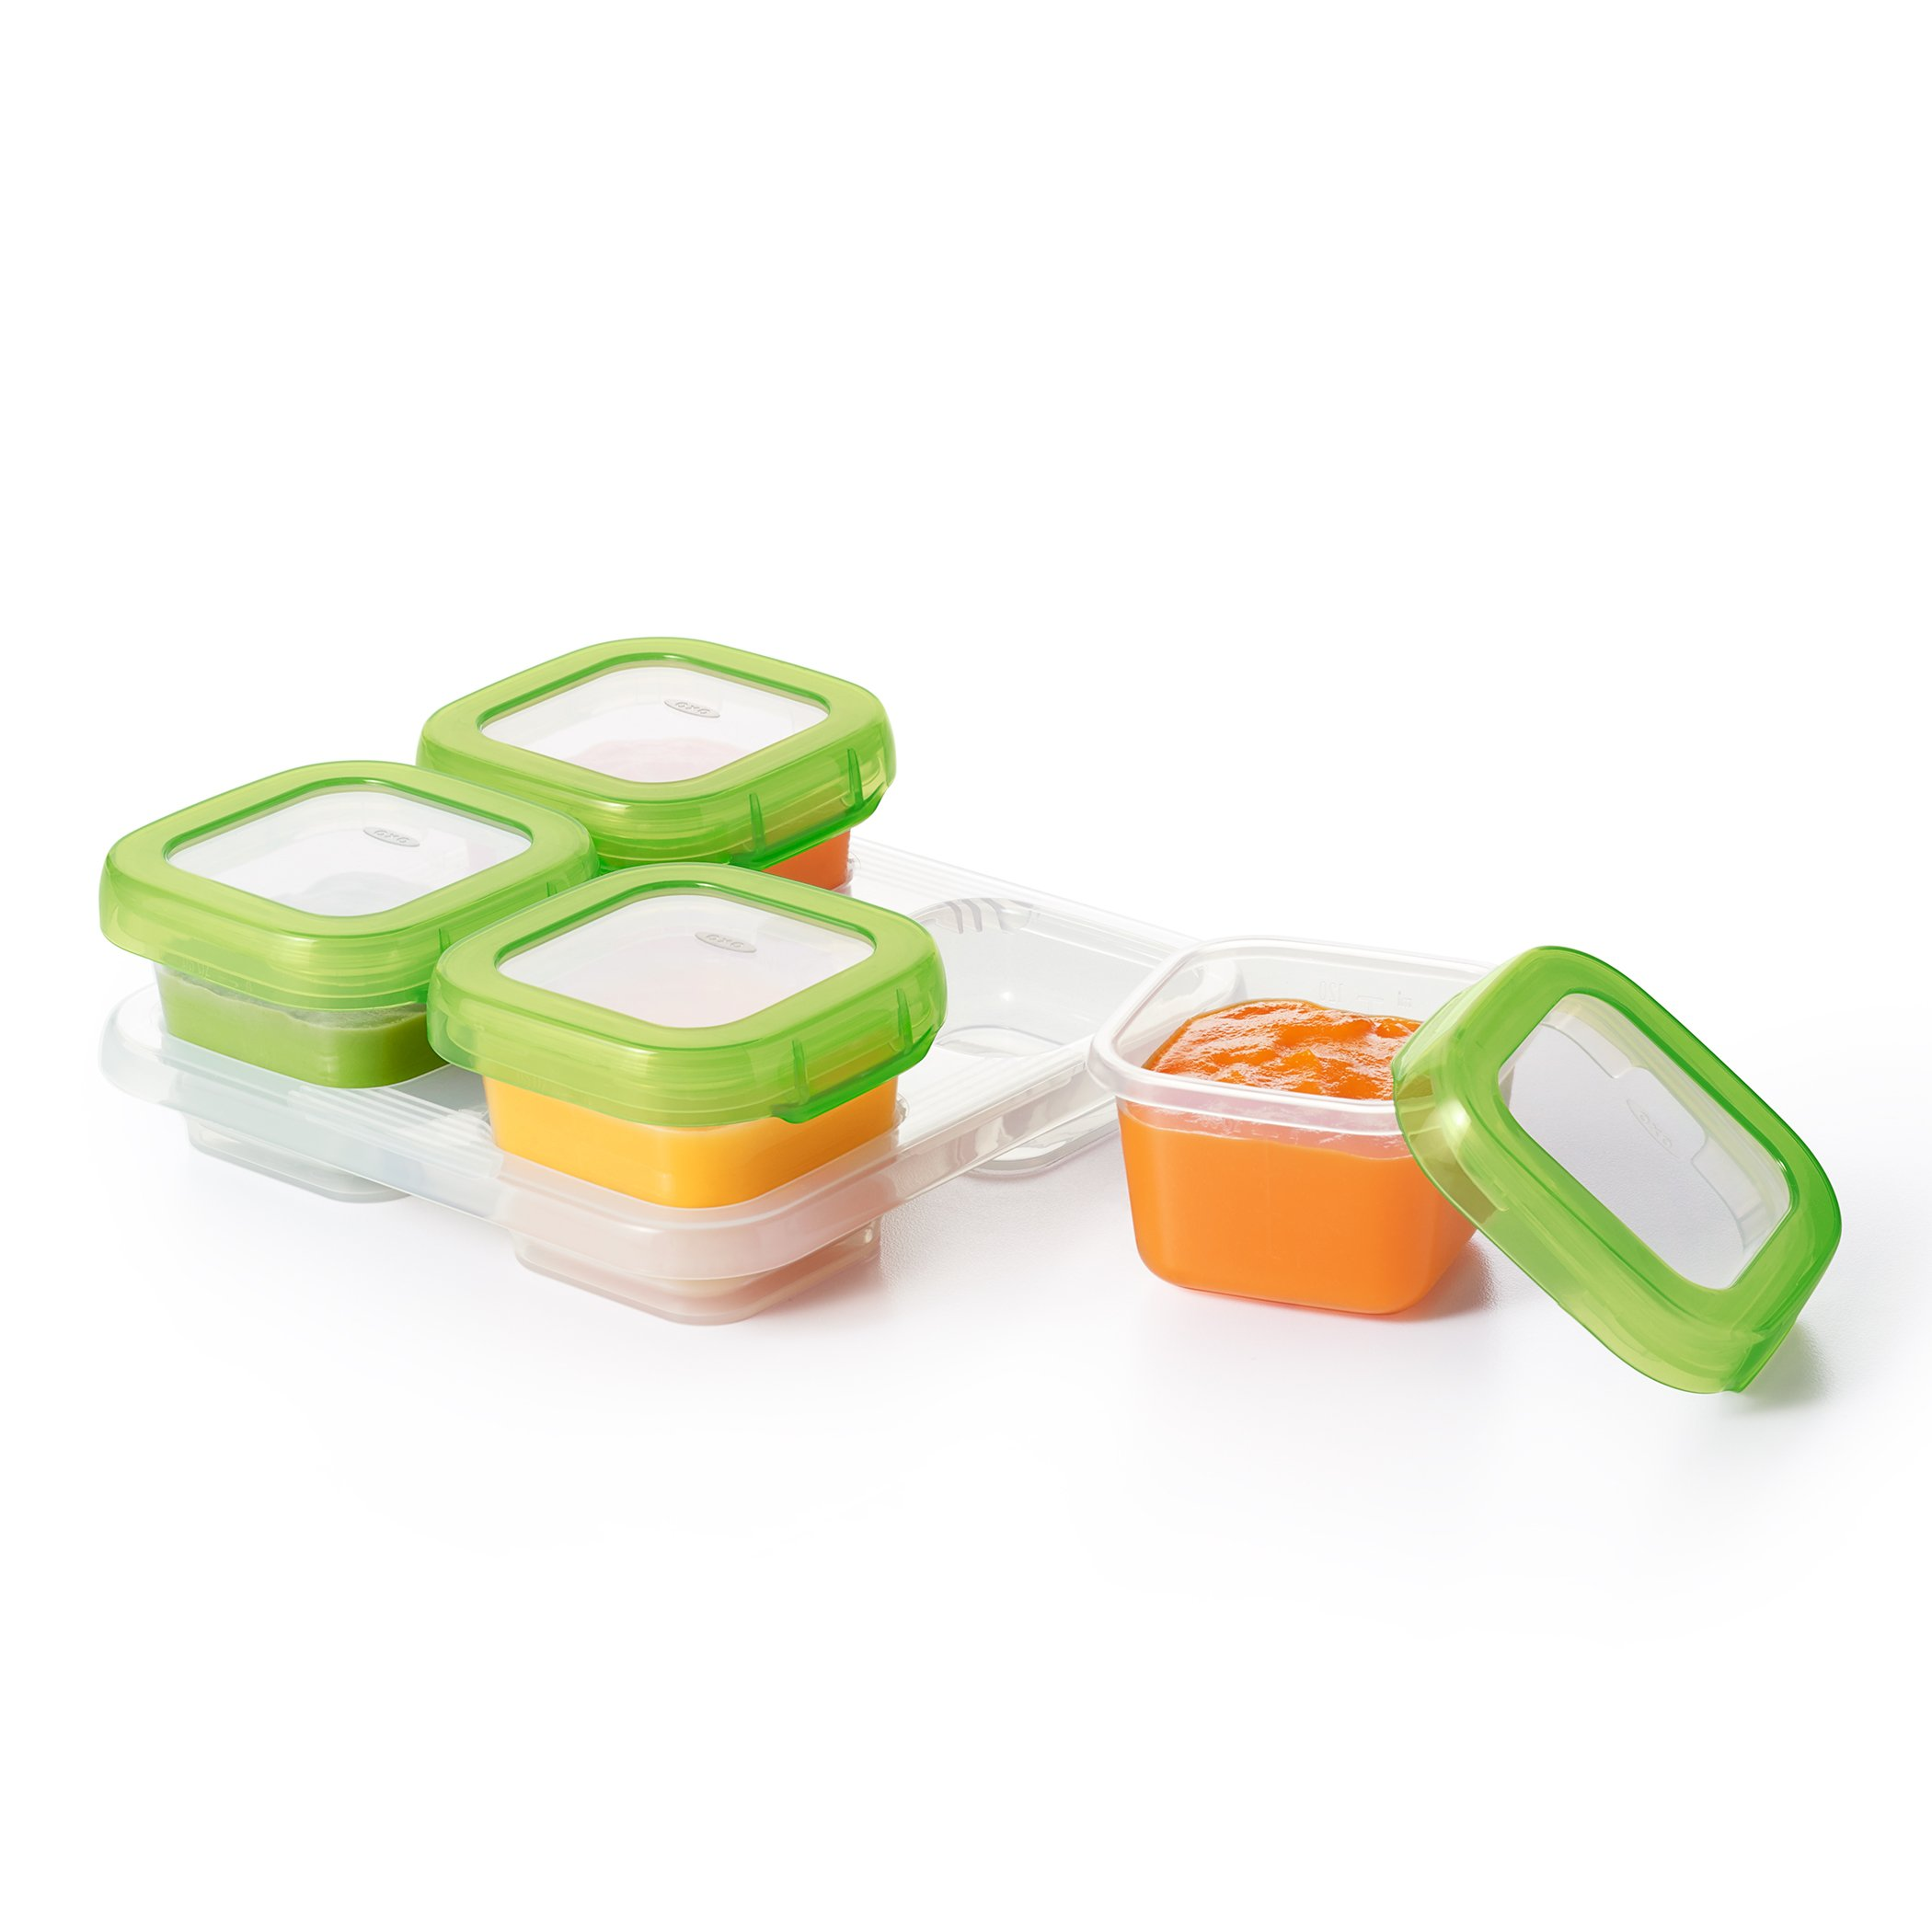 OXO Tot Mealtime Starter Value Set with Roll-up Bib, Feeding Spoons, Food Masher and Four 4oz Baby Blocks Freezer Storage Containers by OXO Tot (Image #12)